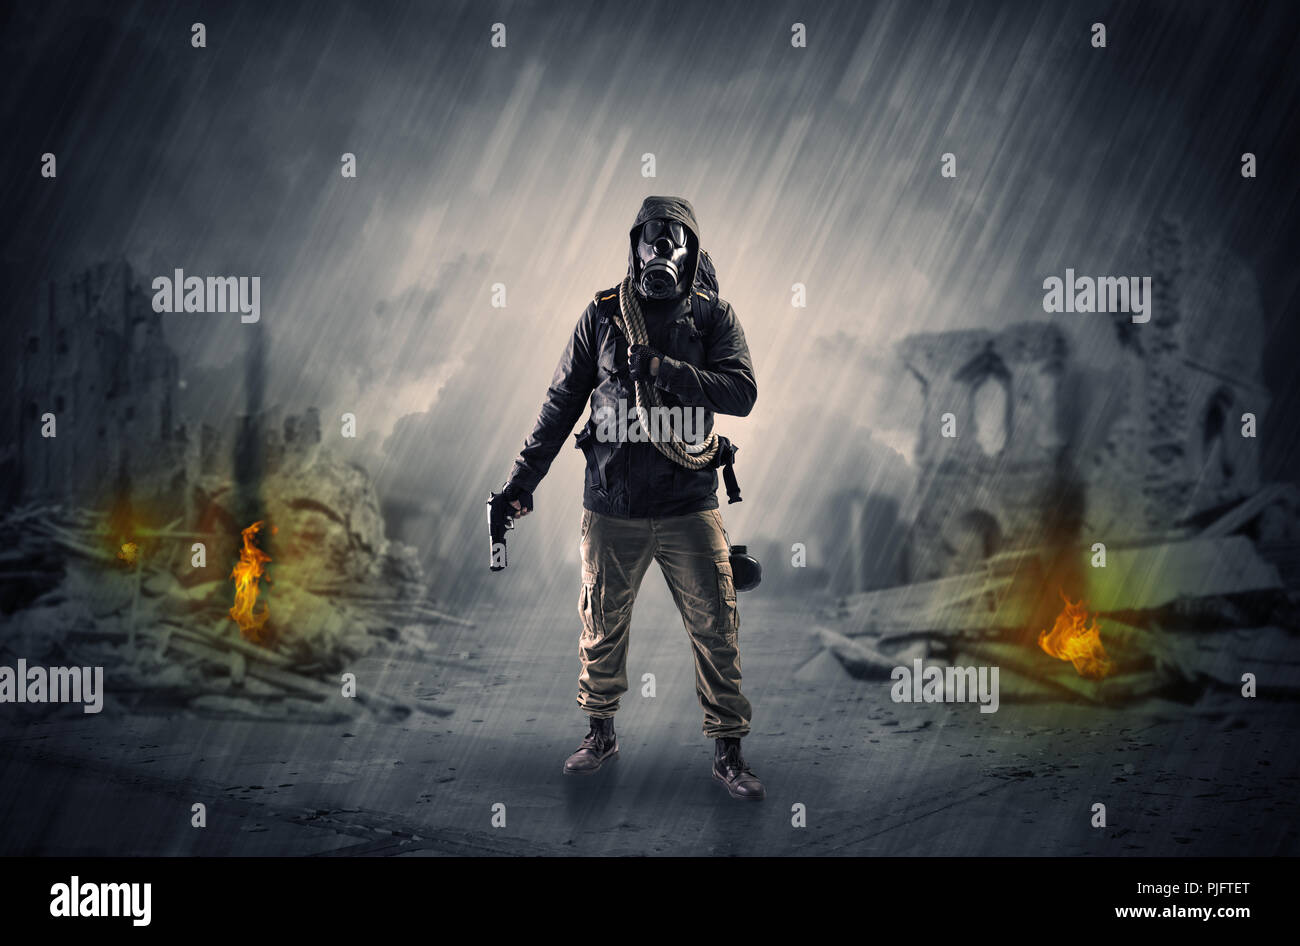 Destroyed place after a catastrophe with man in gas mask and weapon on his hand  - Stock Image